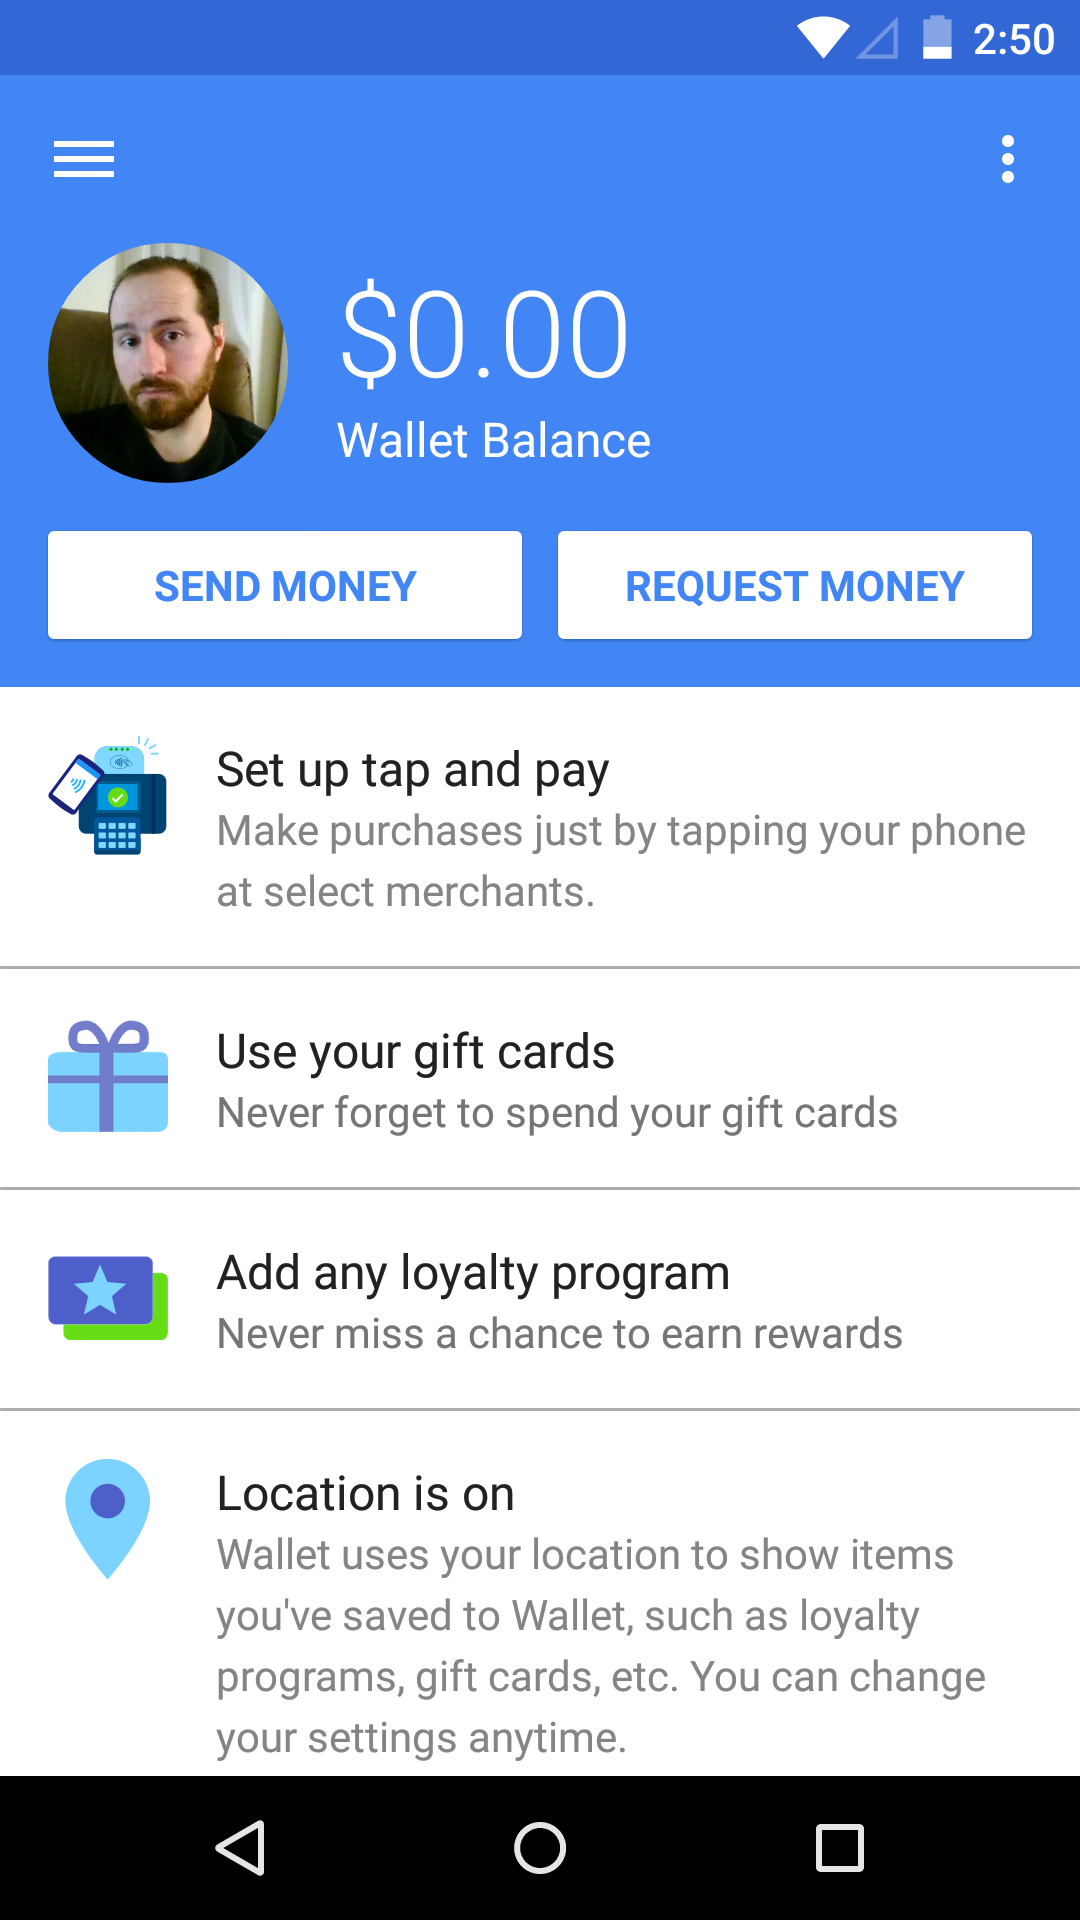 APK Download] Google Wallet Updated From v2 All The Way To v7 With A